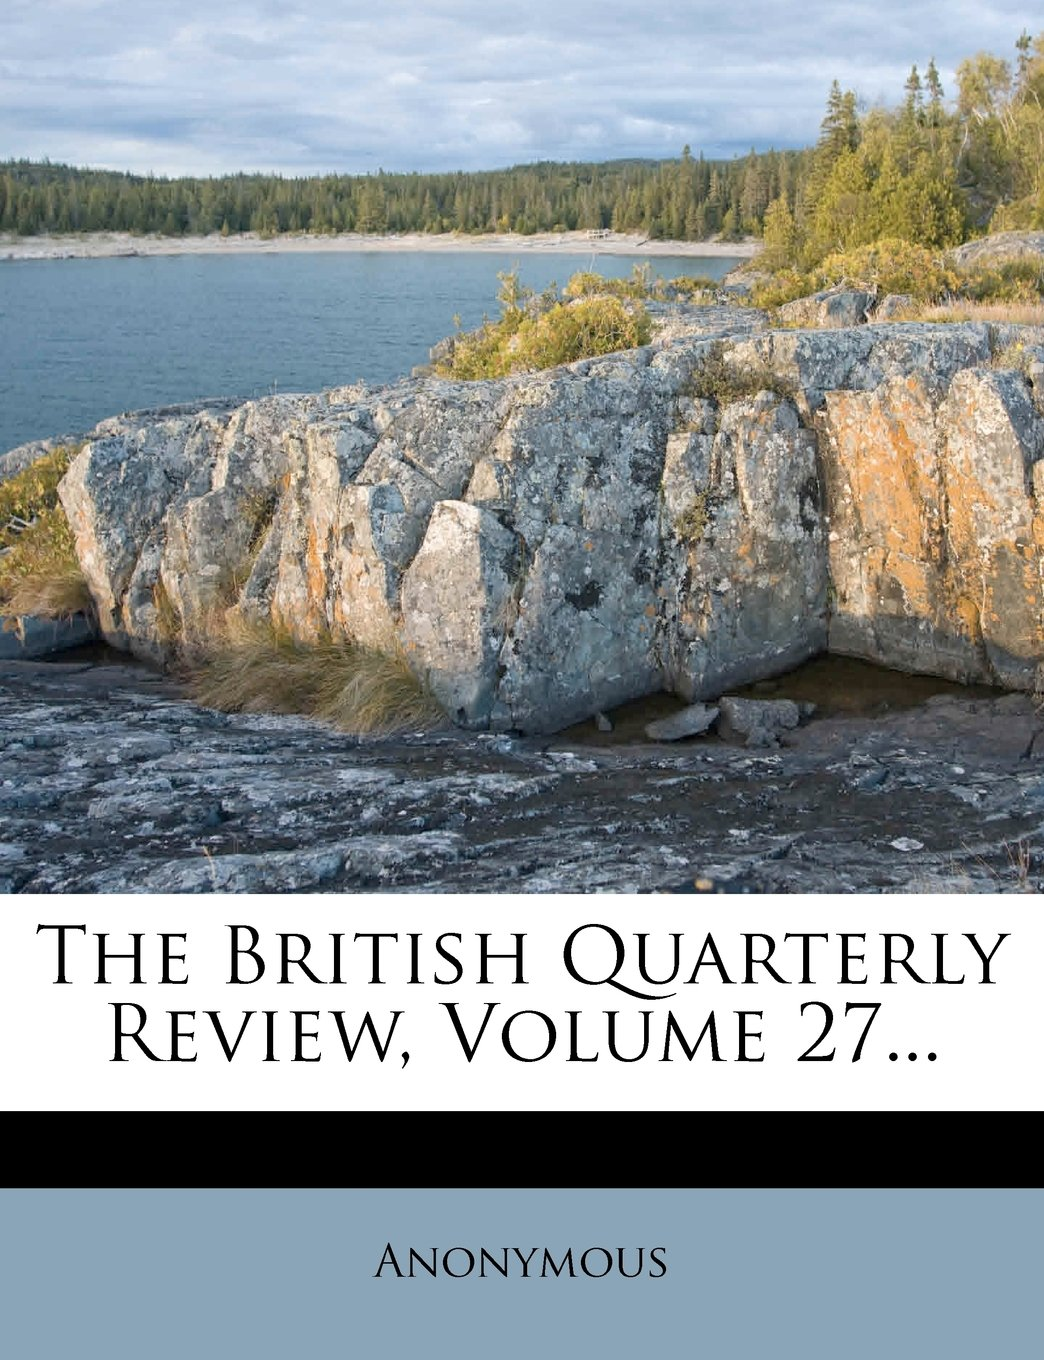 The British Quarterly Review, Volume 27... Text fb2 ebook